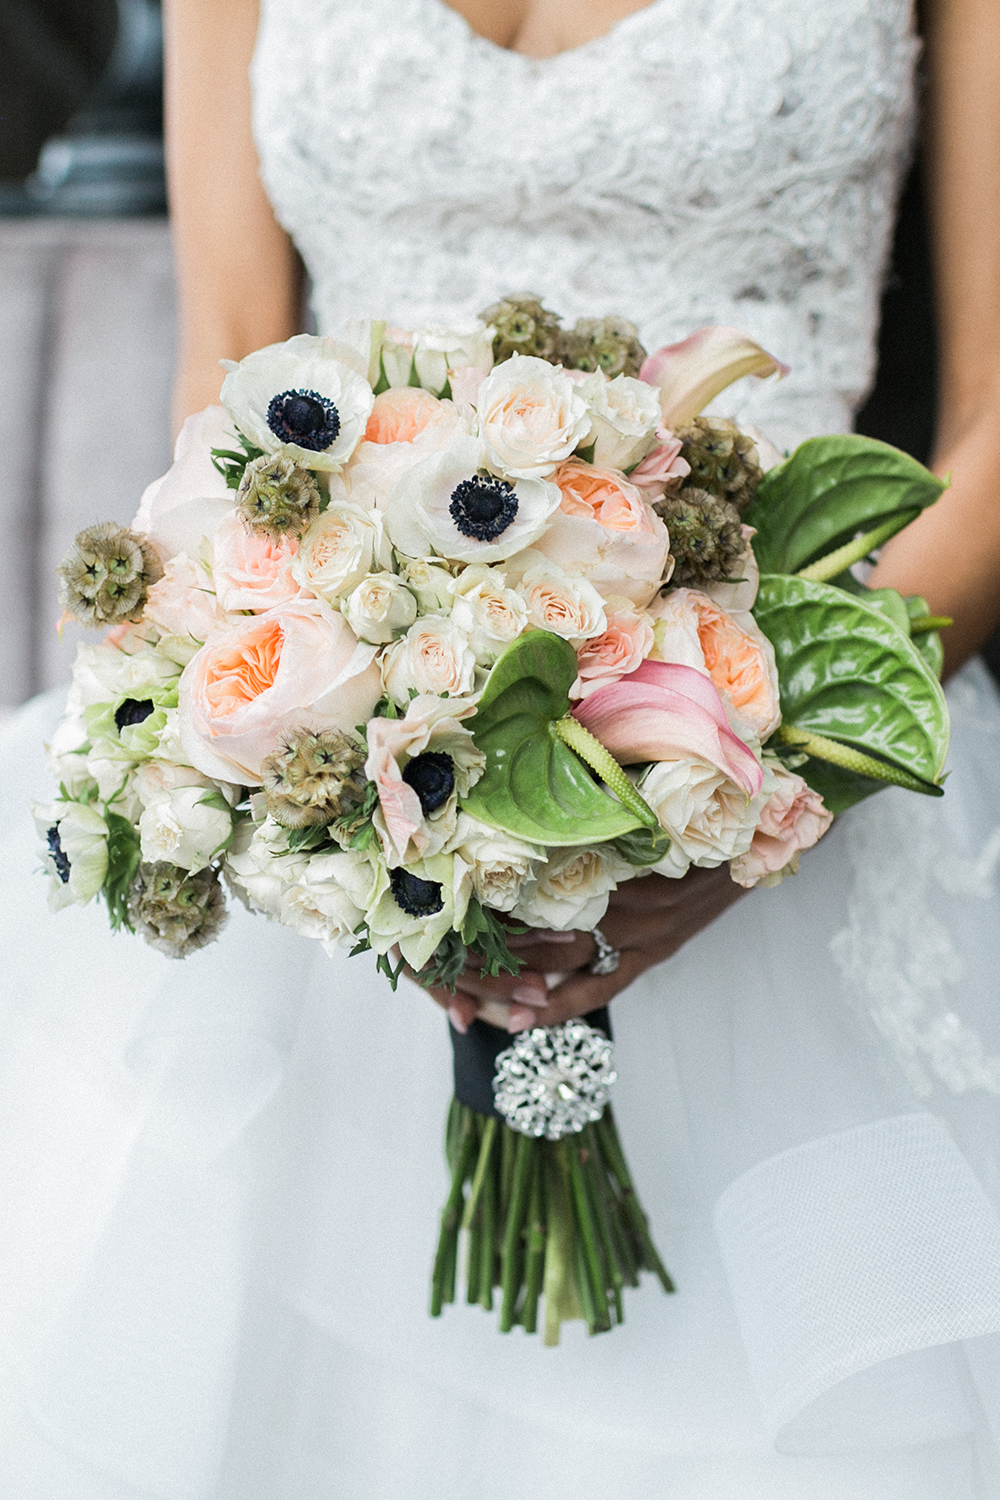 peach bouquet with white anemone - photo by Alexis June Weddings http://ruffledblog.com/industrial-glam-wedding-inspiration